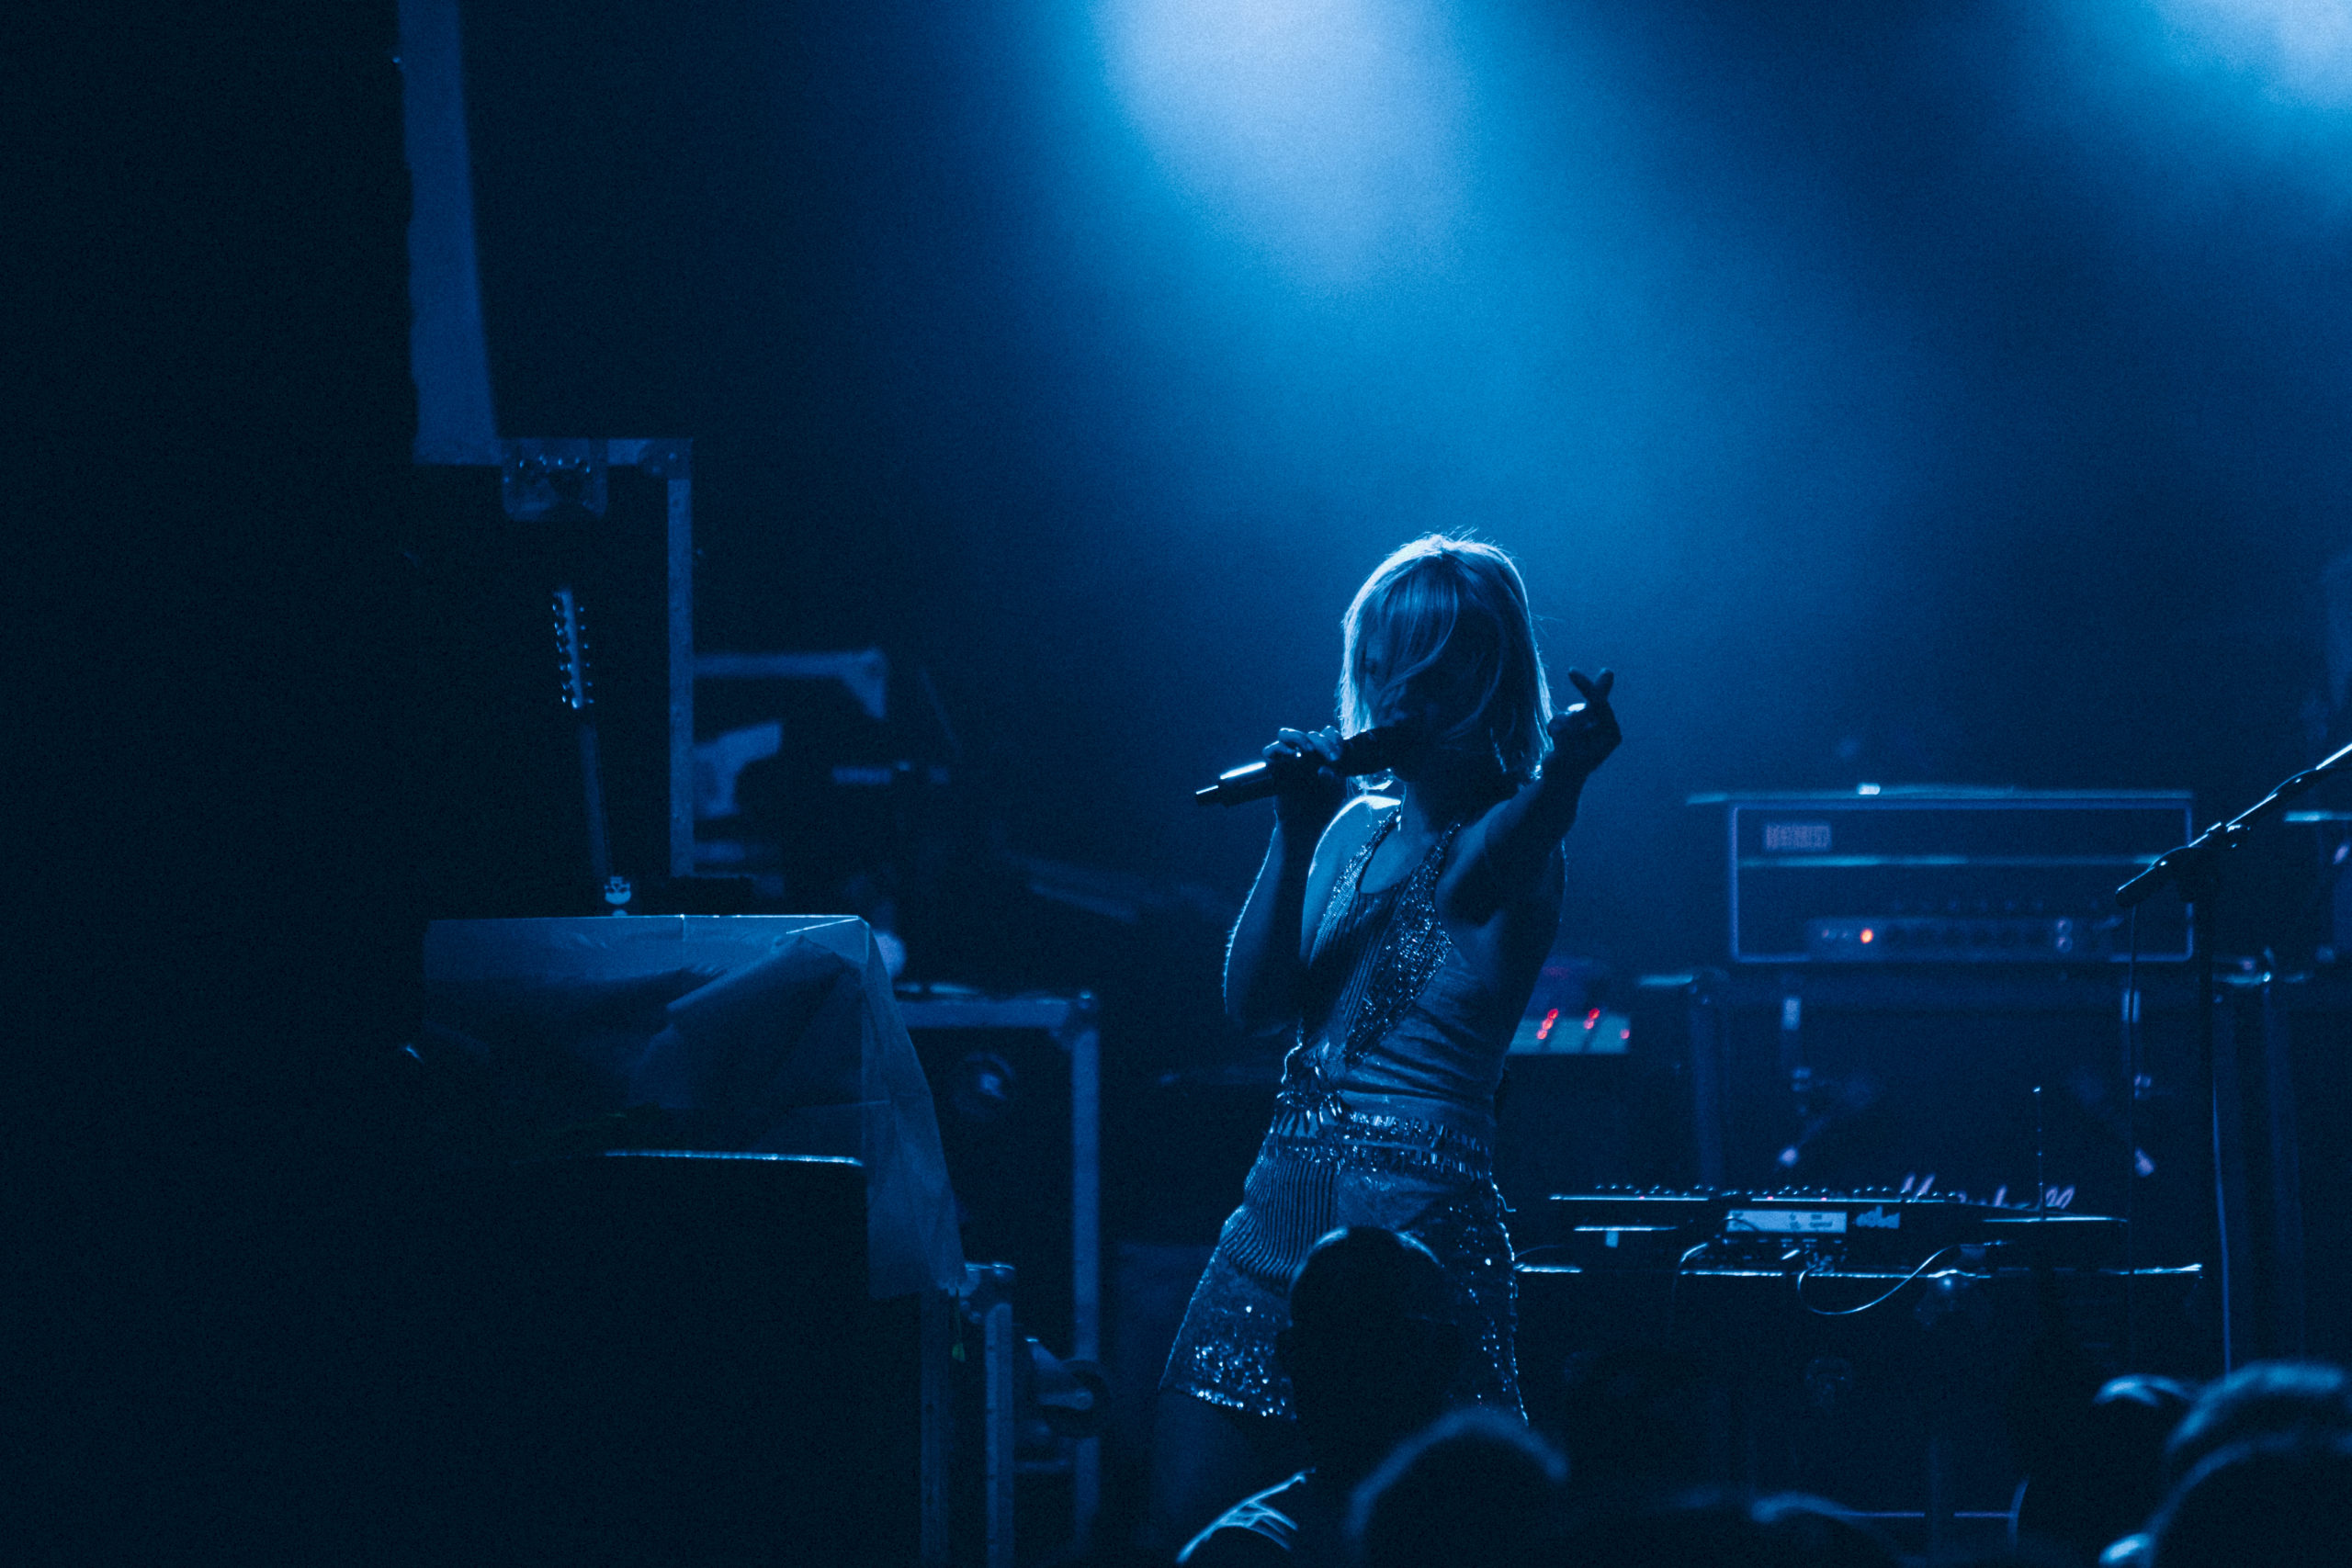 Metric performs at Subb's BBQ during SXSW 2010 with the stage bathed in blue light.